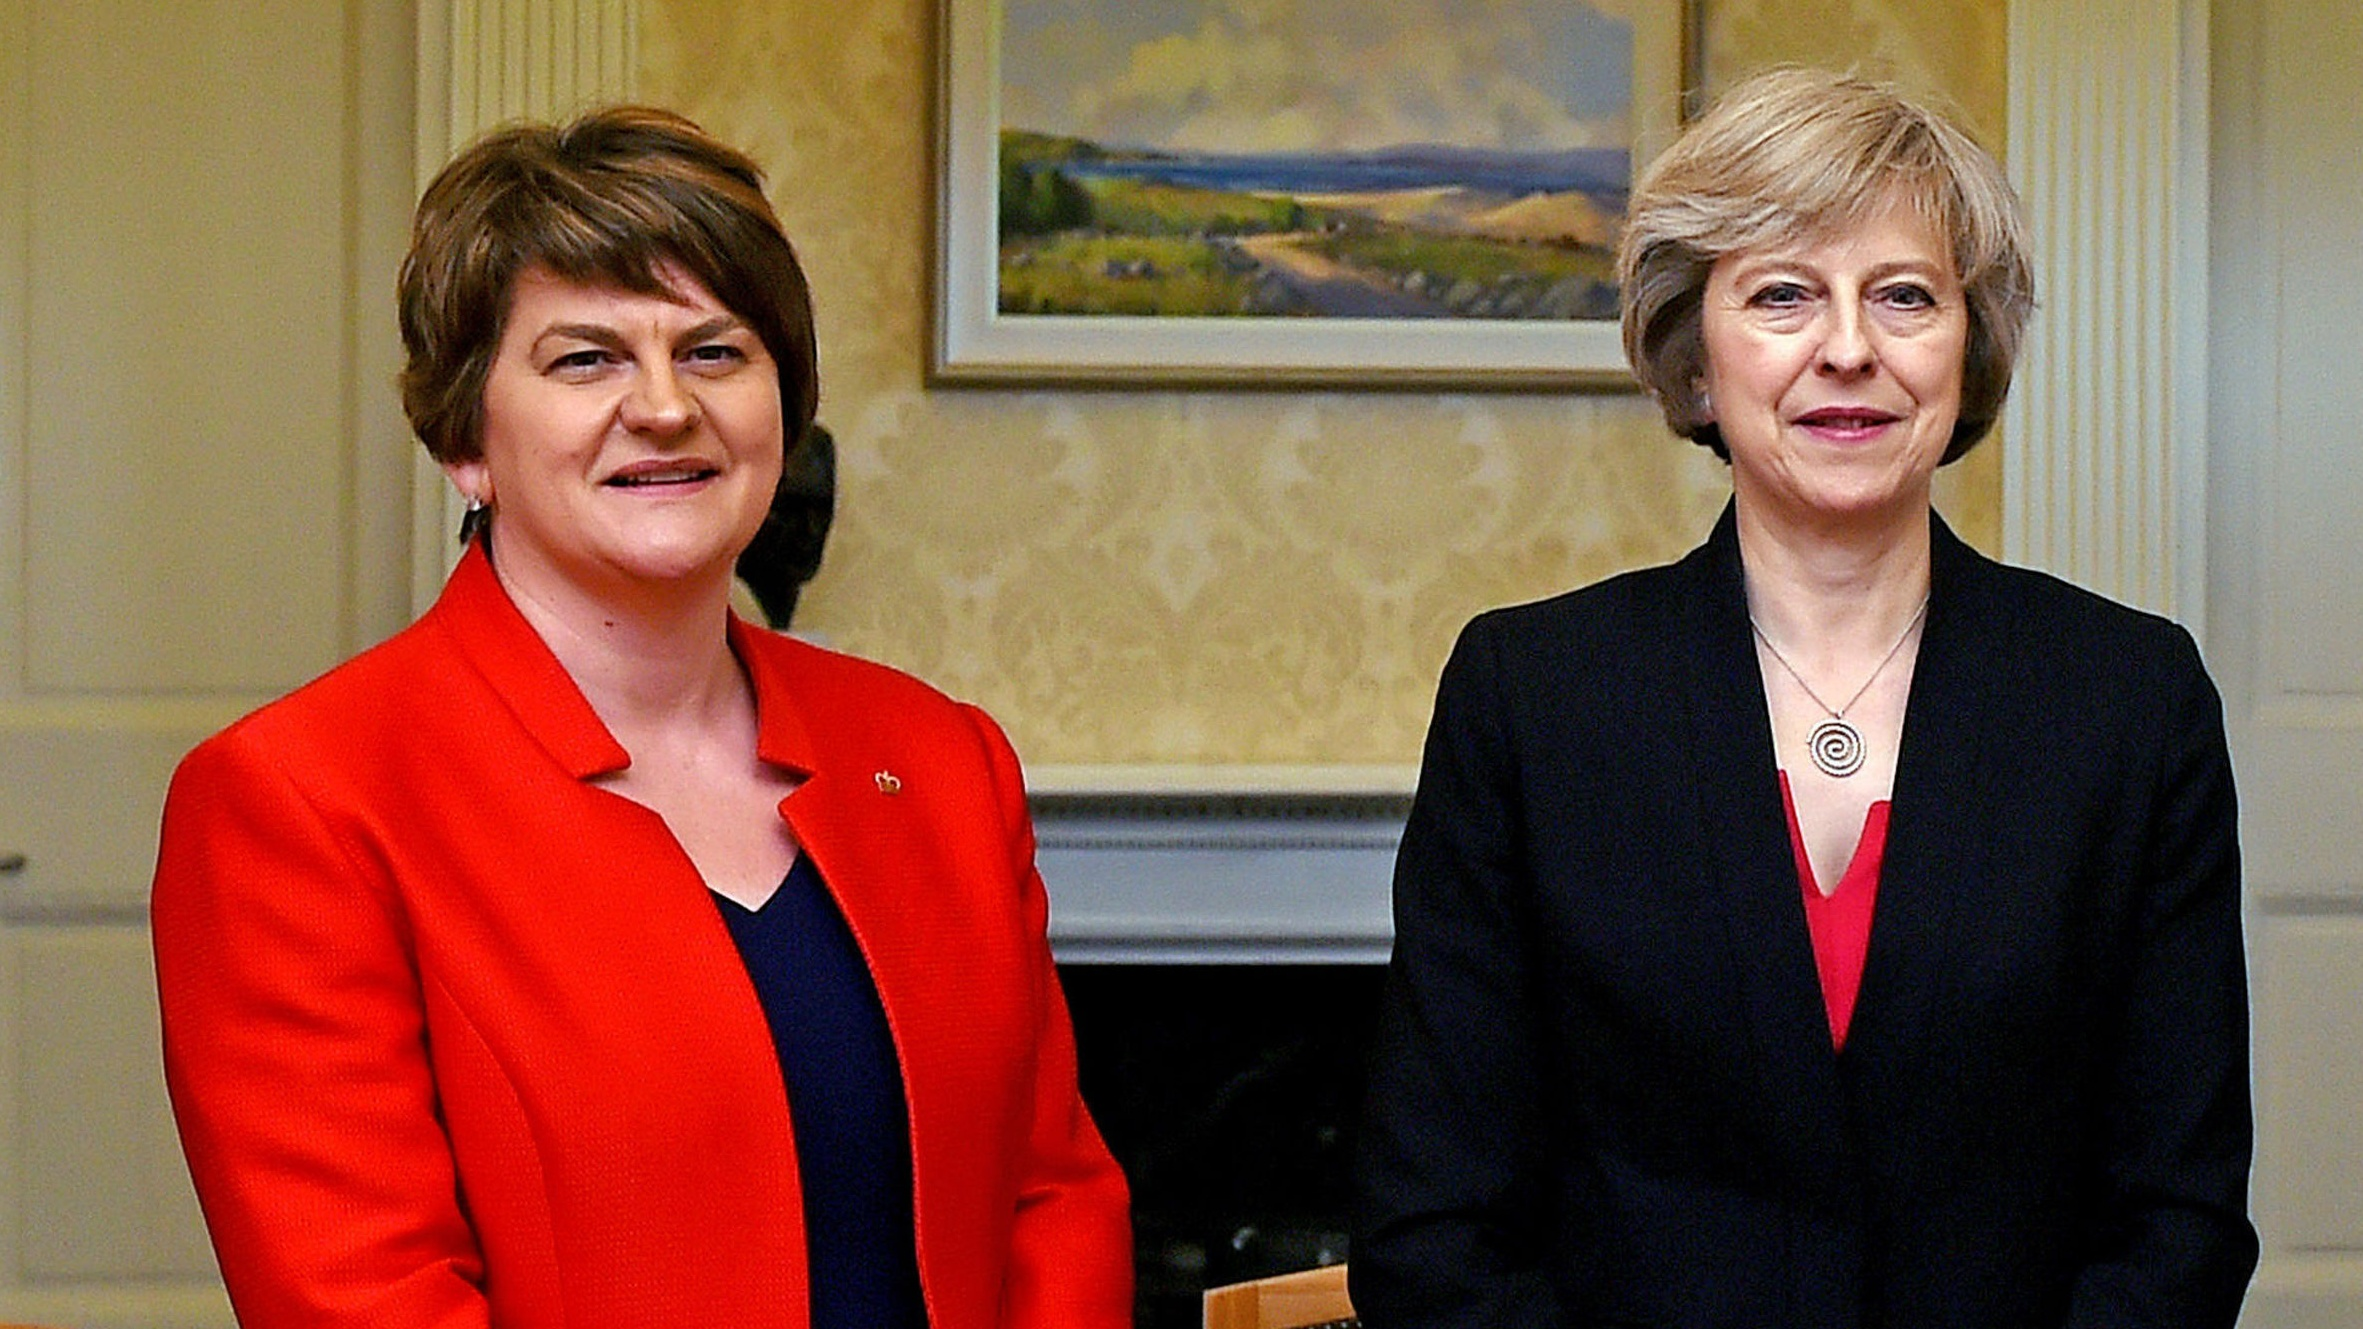 DUP agreement will end 'no deal' Brexit talk